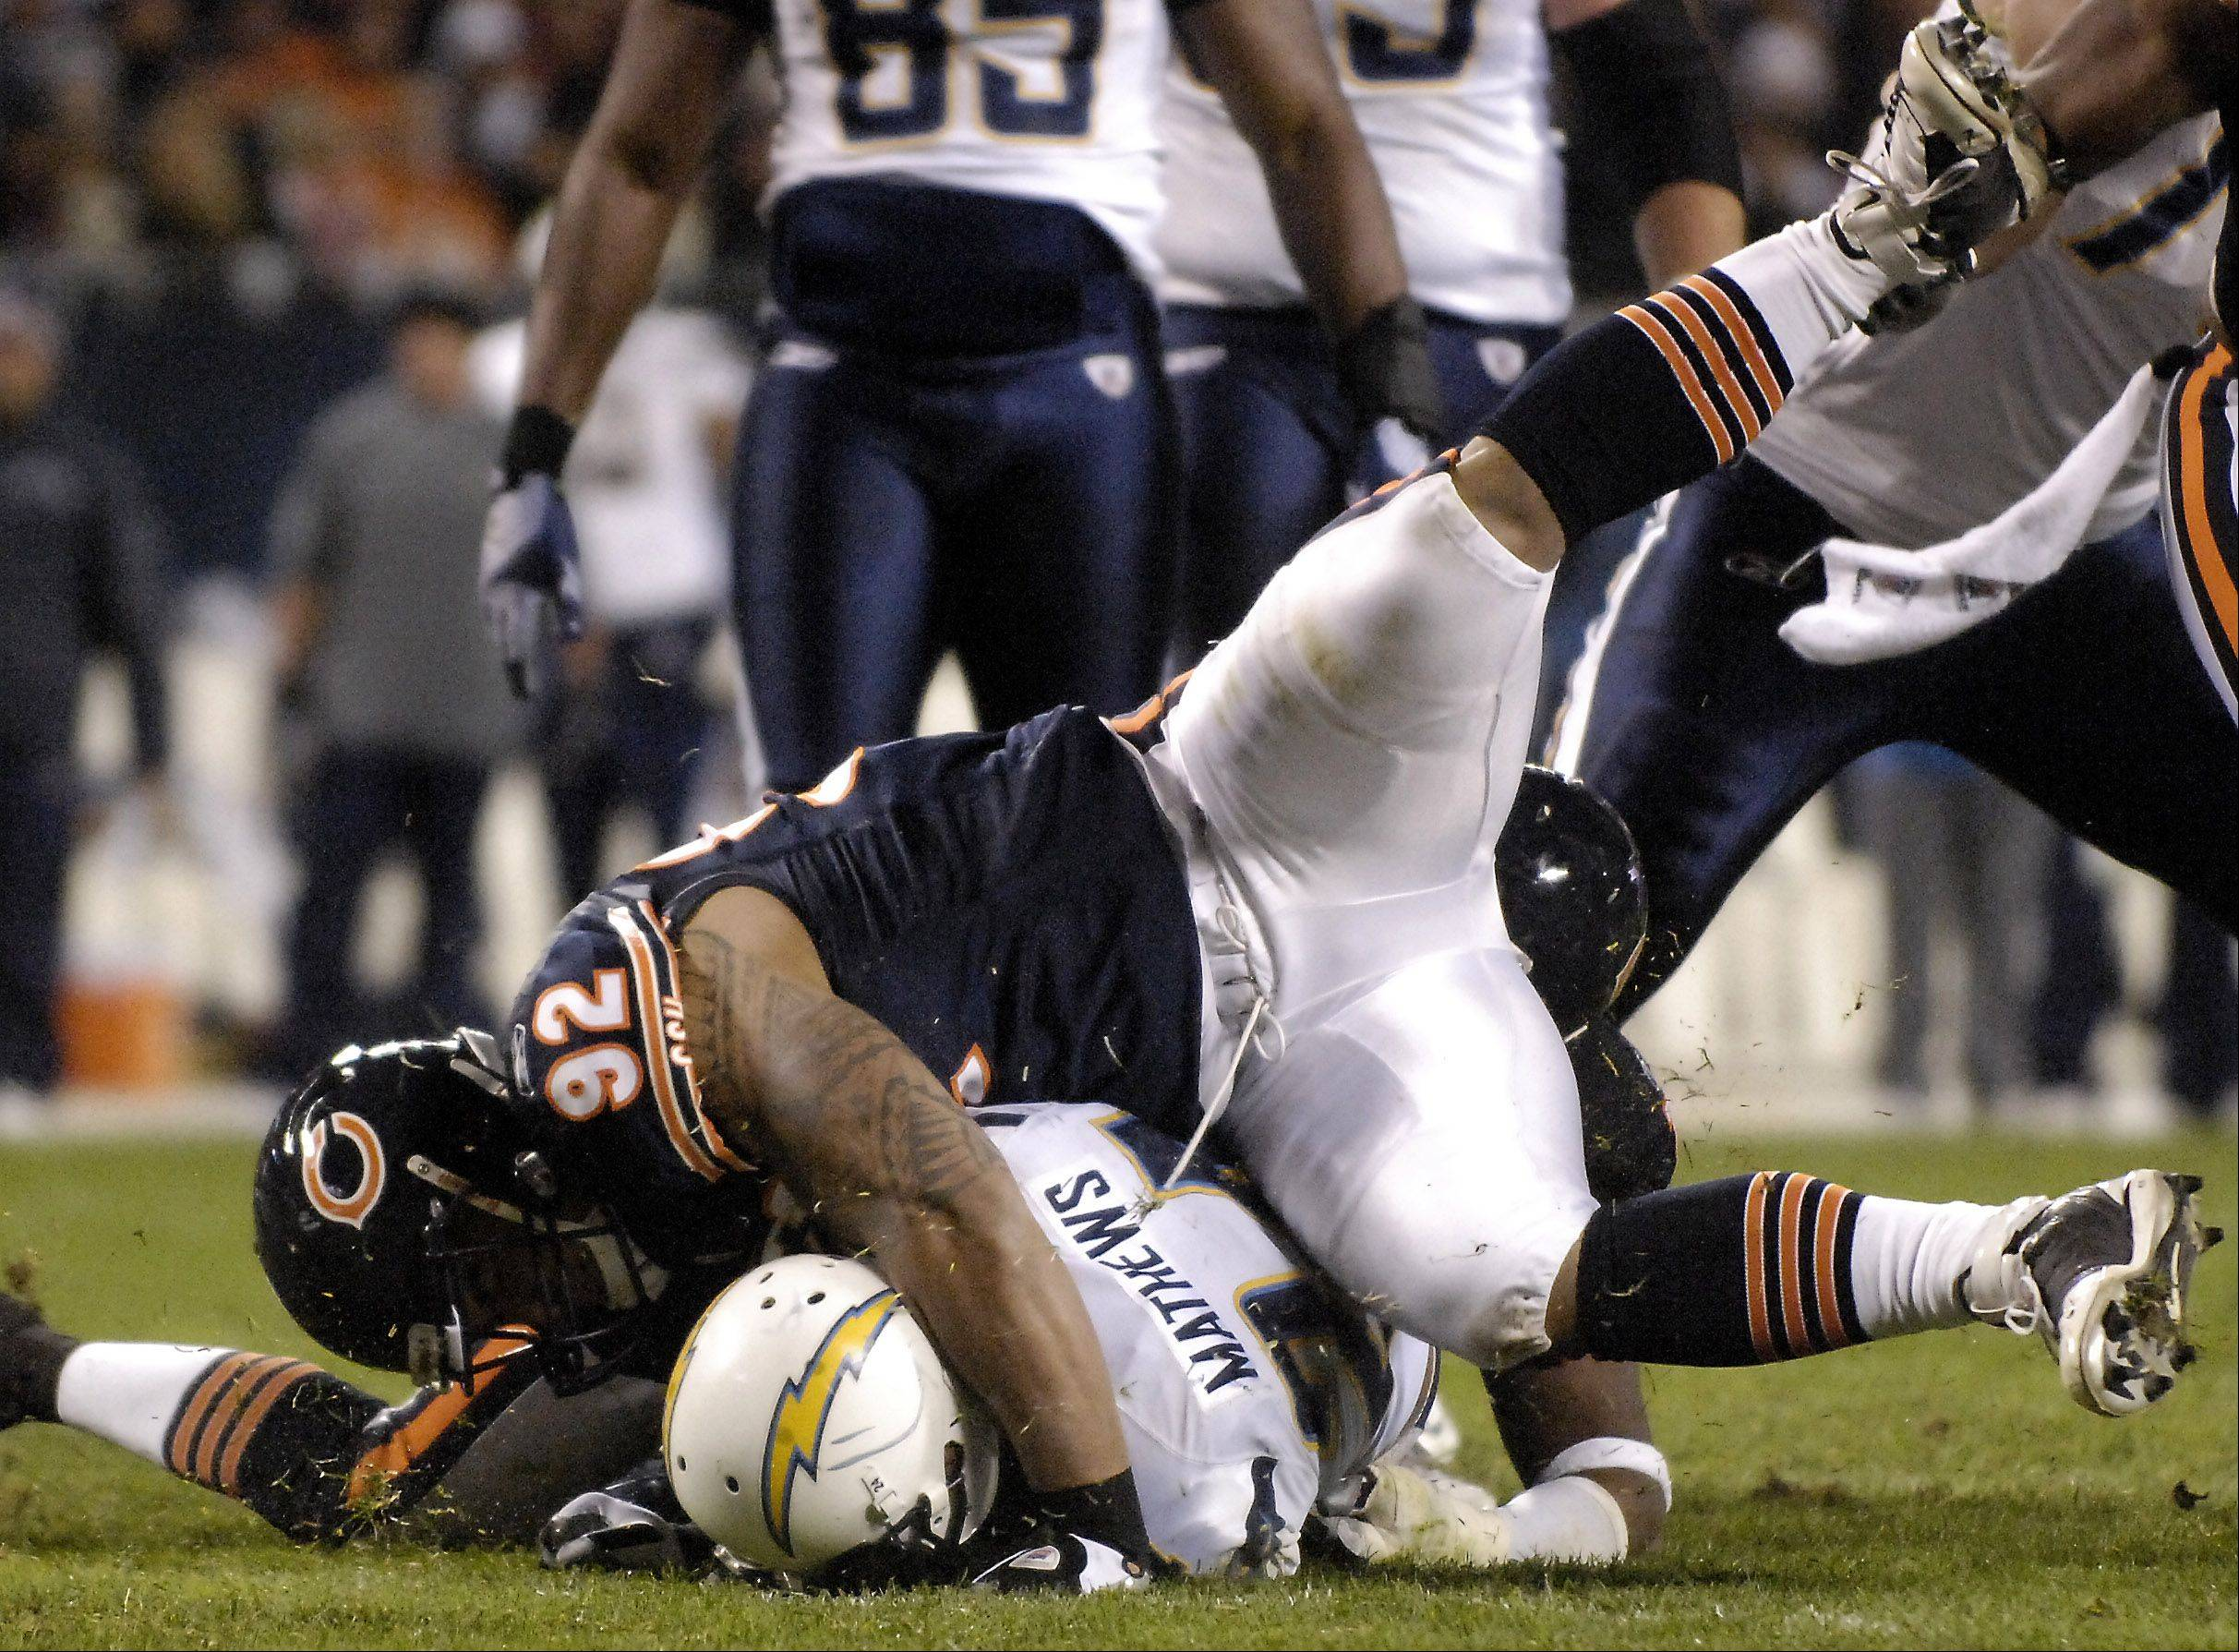 Rick West/rwest@dailyherald.com � Chicago Bears defensive tackle Stephen Paea (92) drives San Diego Chargers running back Ryan Mathews (24) into the ground for no gain during Sunday's game at Soldier Field in Chicago. �